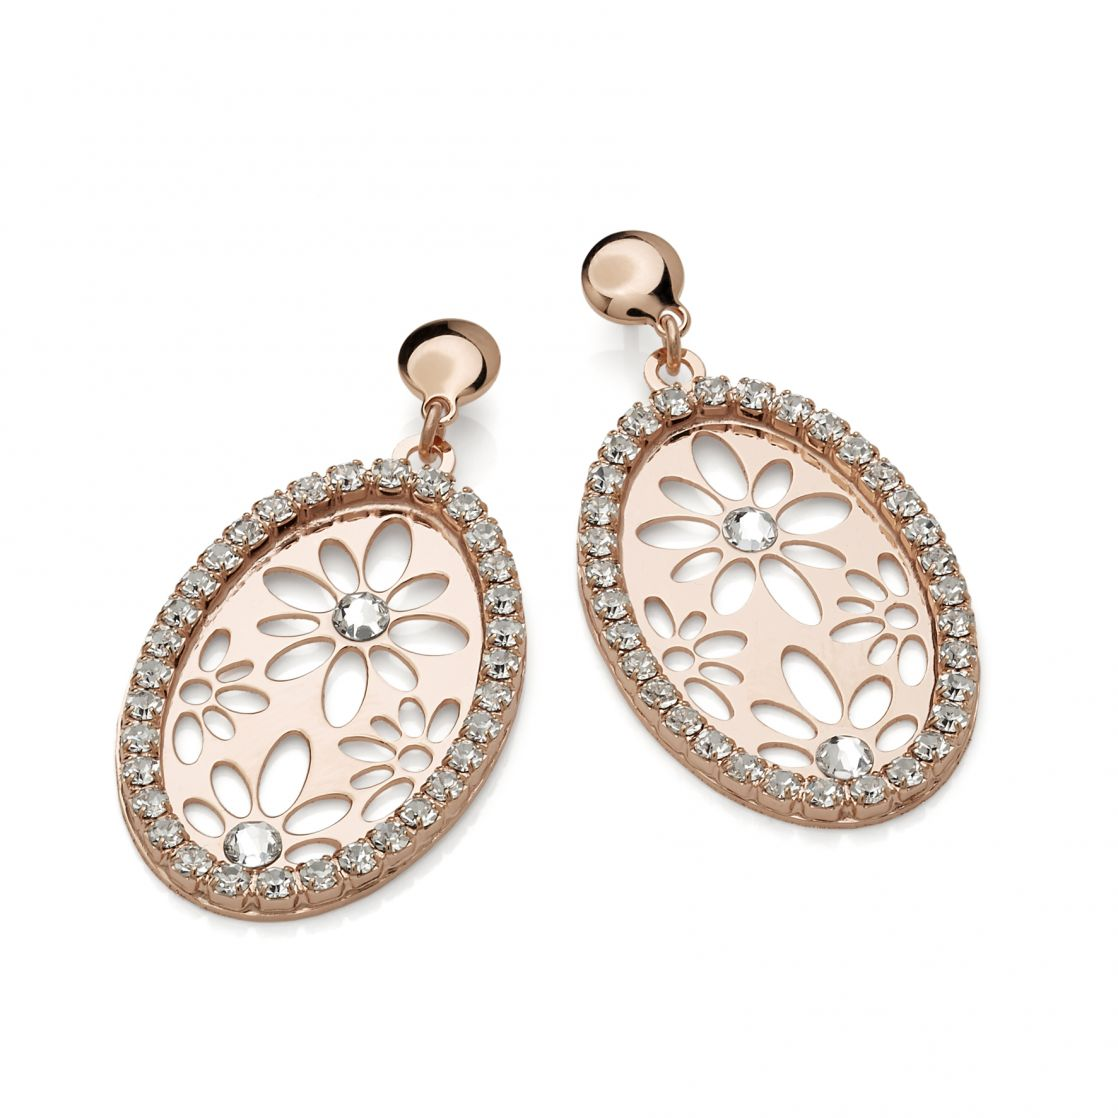 OVAL EARRINGS ROSE GOLD PLATING WITH STRASS AND CRYSTALS